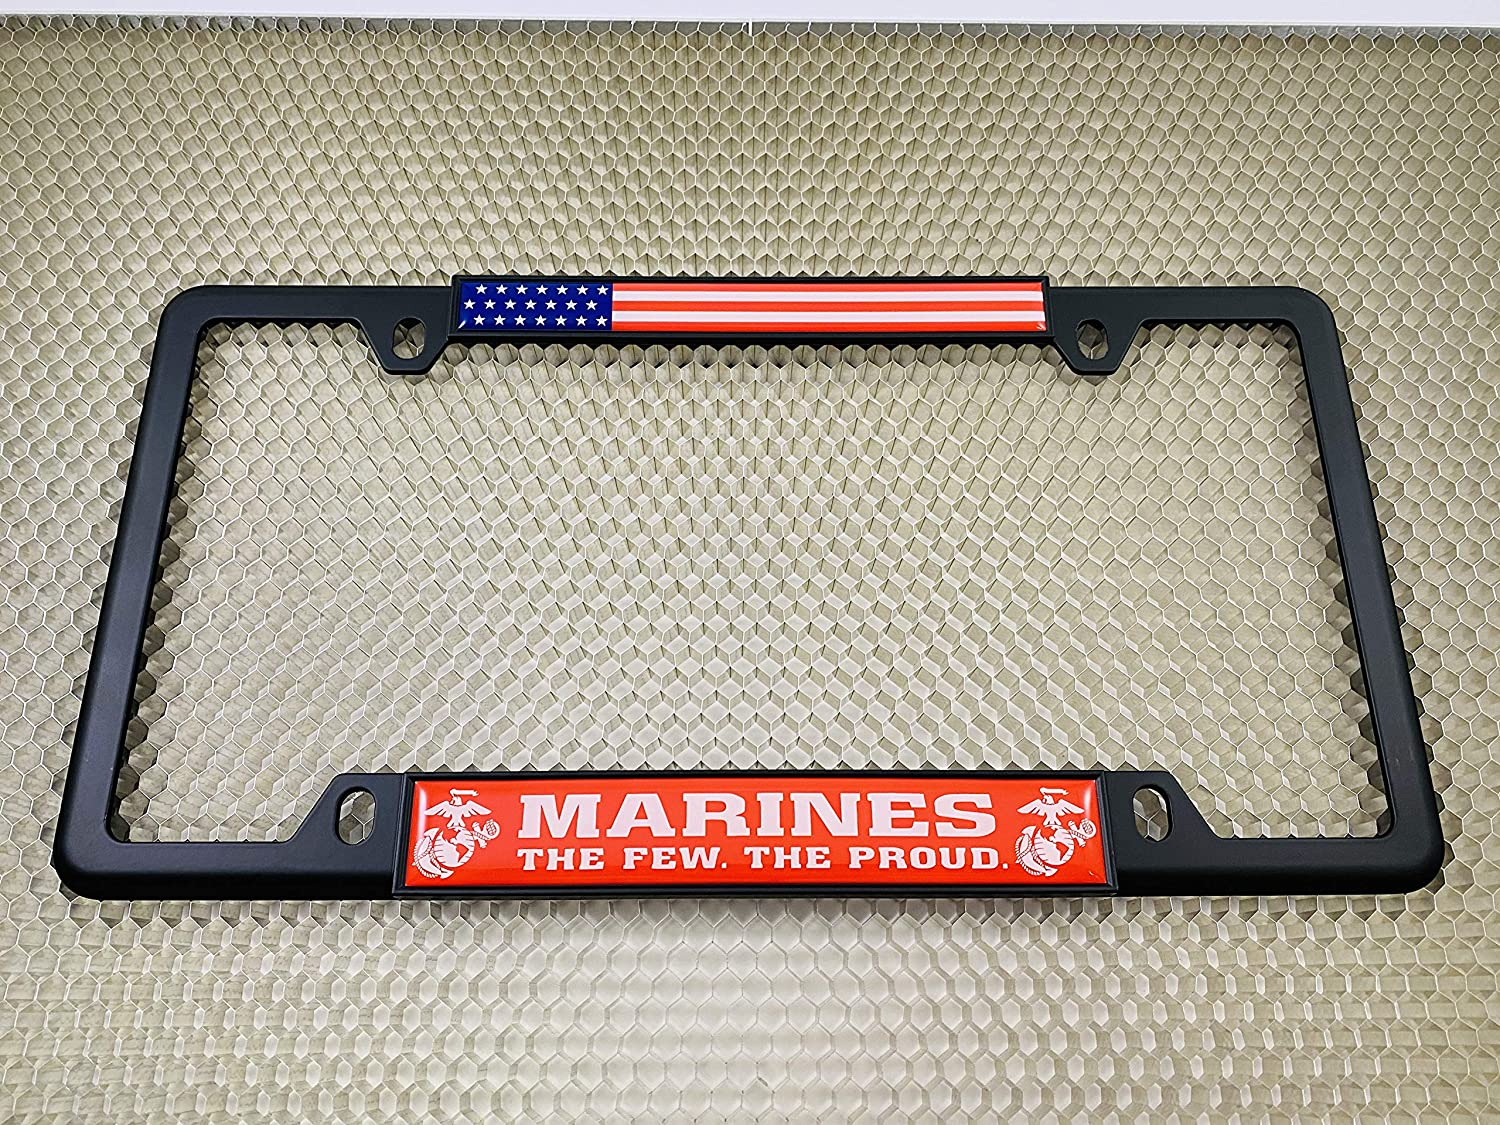 Marines Top 4 Hole Metal Car License Plate Frame with Free caps Thin Chrome The Proud. Red /& White Text - Domed Custom-Made Personalized Narrow The Few